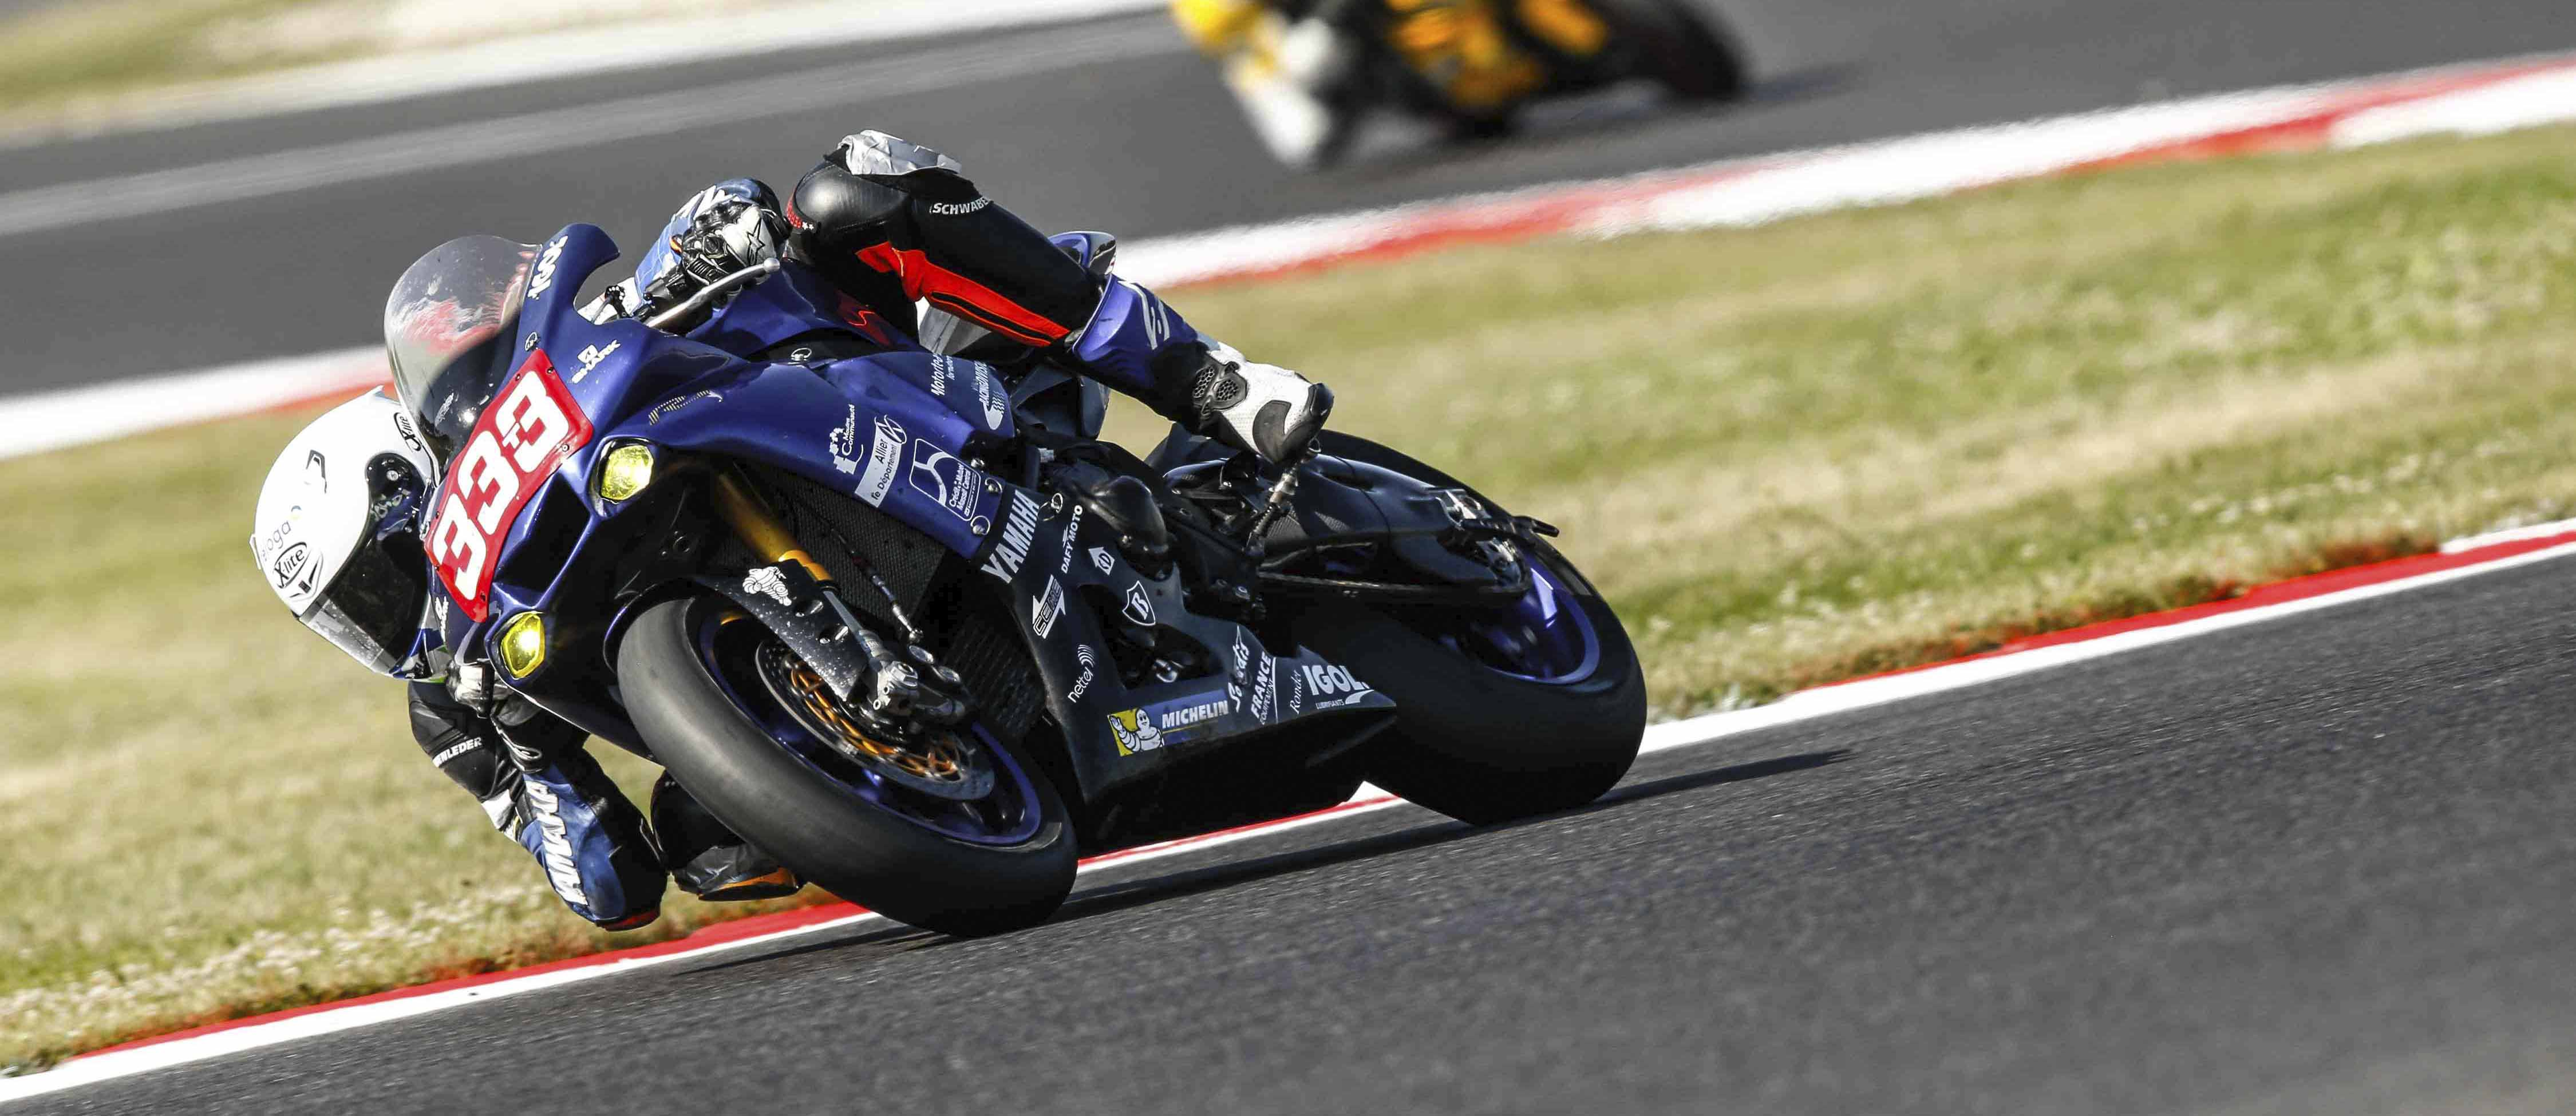 Spectacular turn of events in Superstock